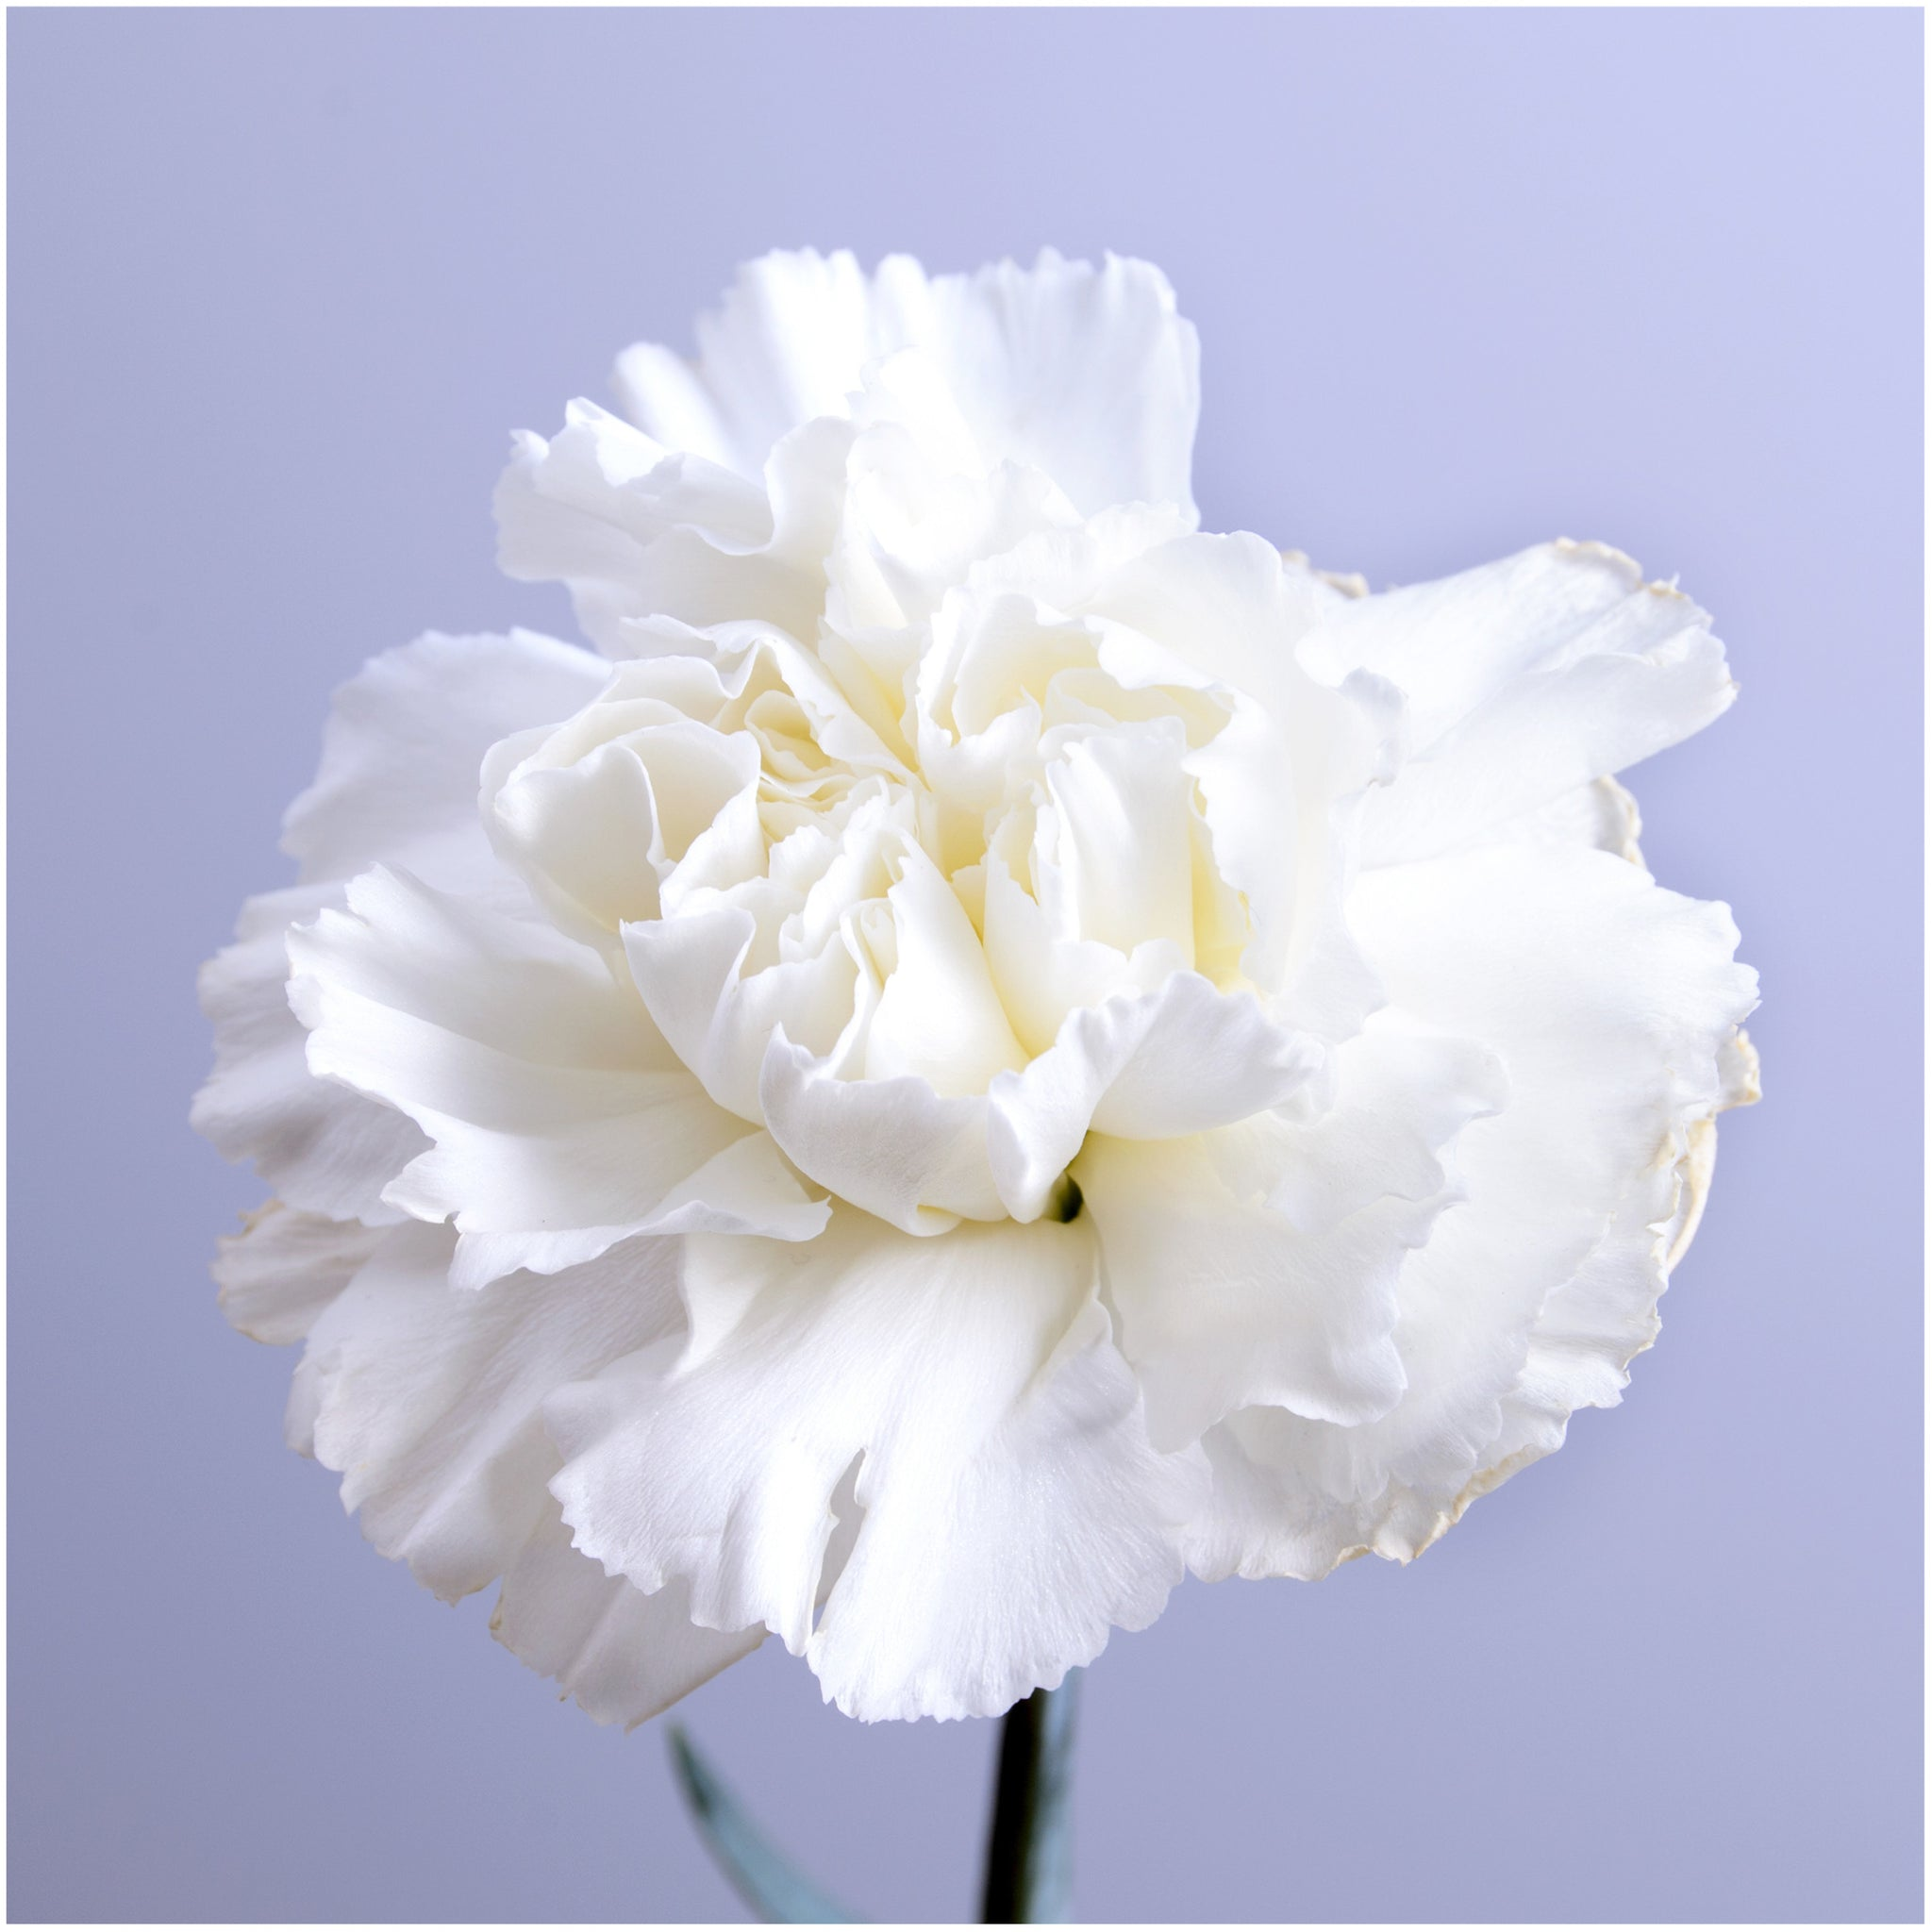 grenadin white carnation seeds dianthus caryophyllus seed needs